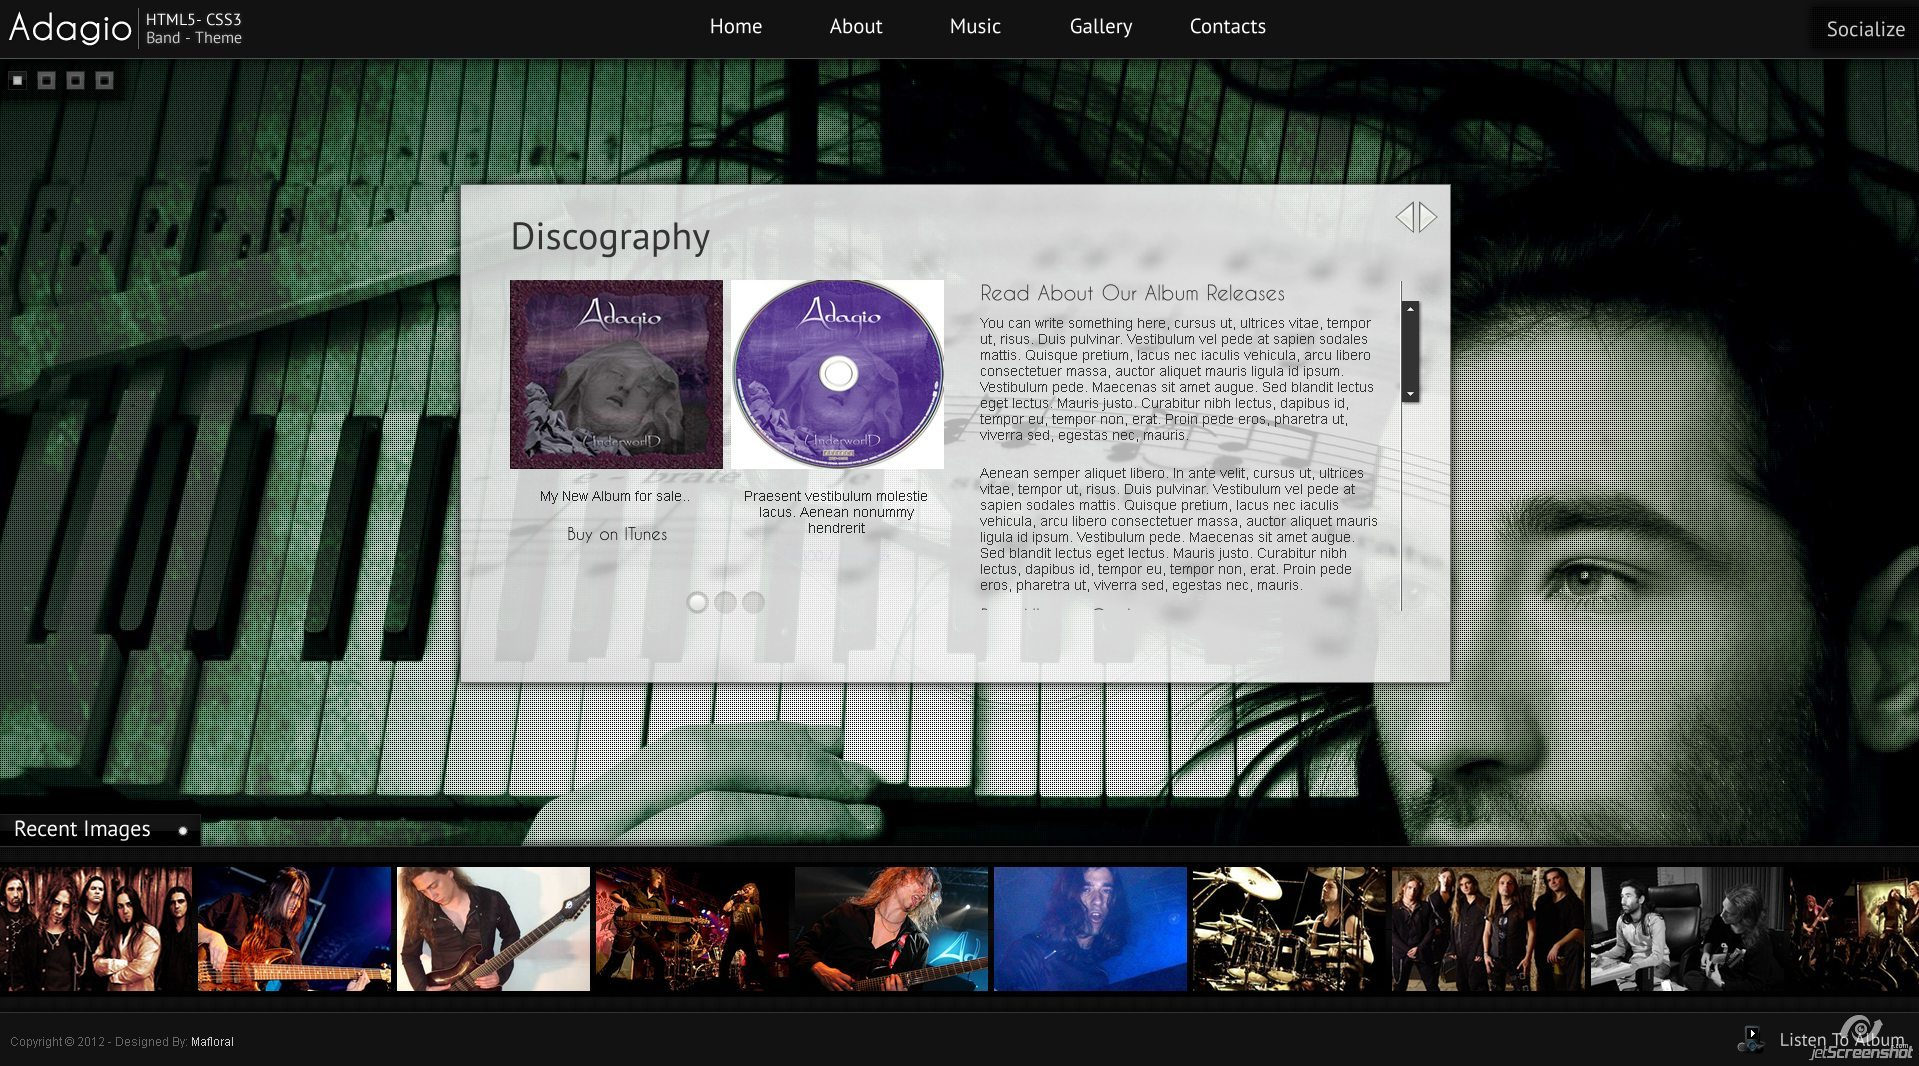 Adagio Musician Template - HTML5 - CSS3 - Discography Page  - Display your album art cd and booklet in a slider with button control.